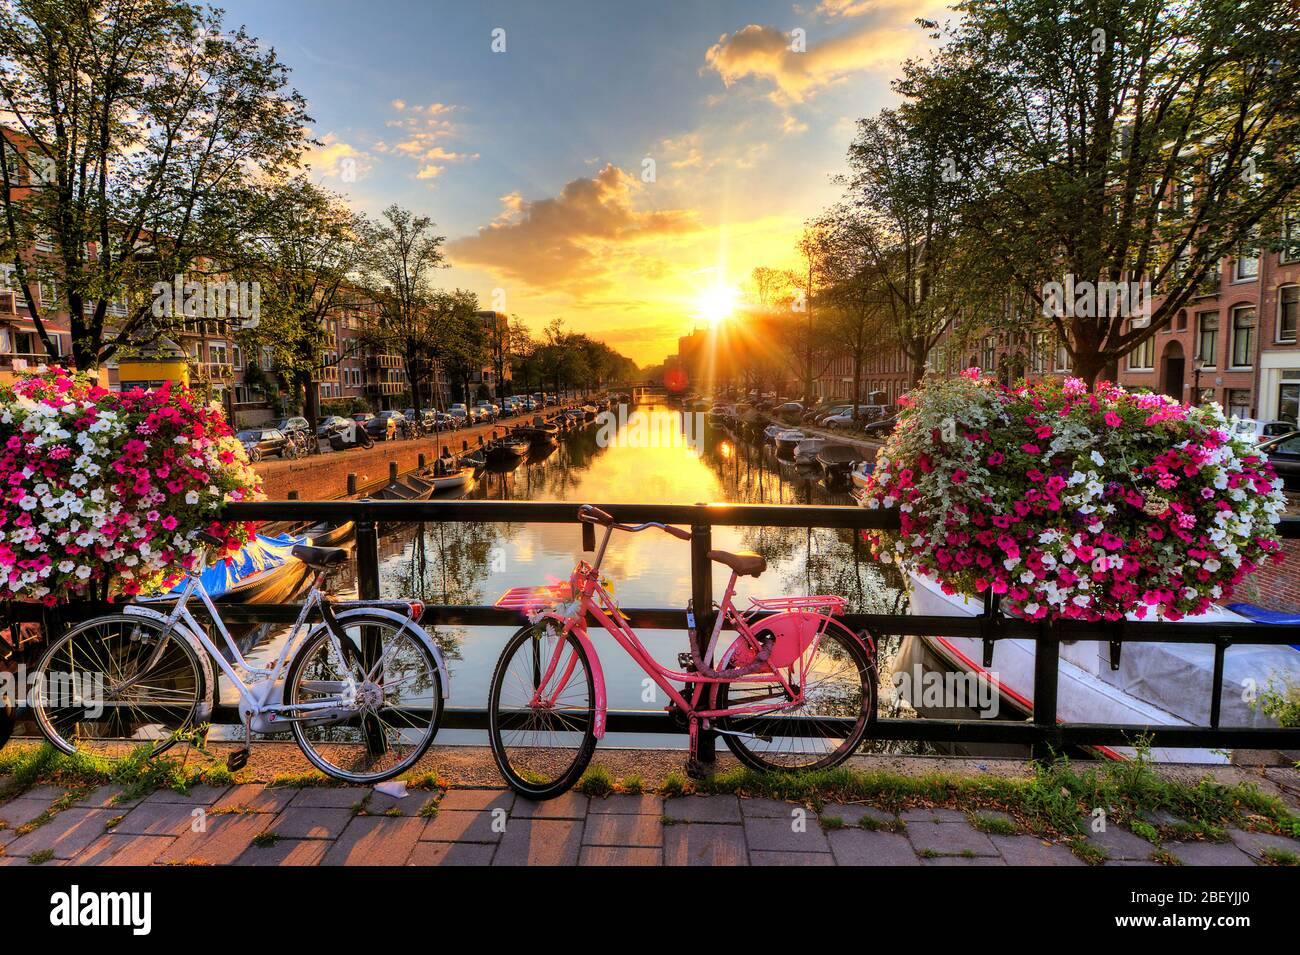 Beautiful sunrise over Amsterdam, The Netherlands, with flowers and bicycles on the bridge in spring Stock Photo